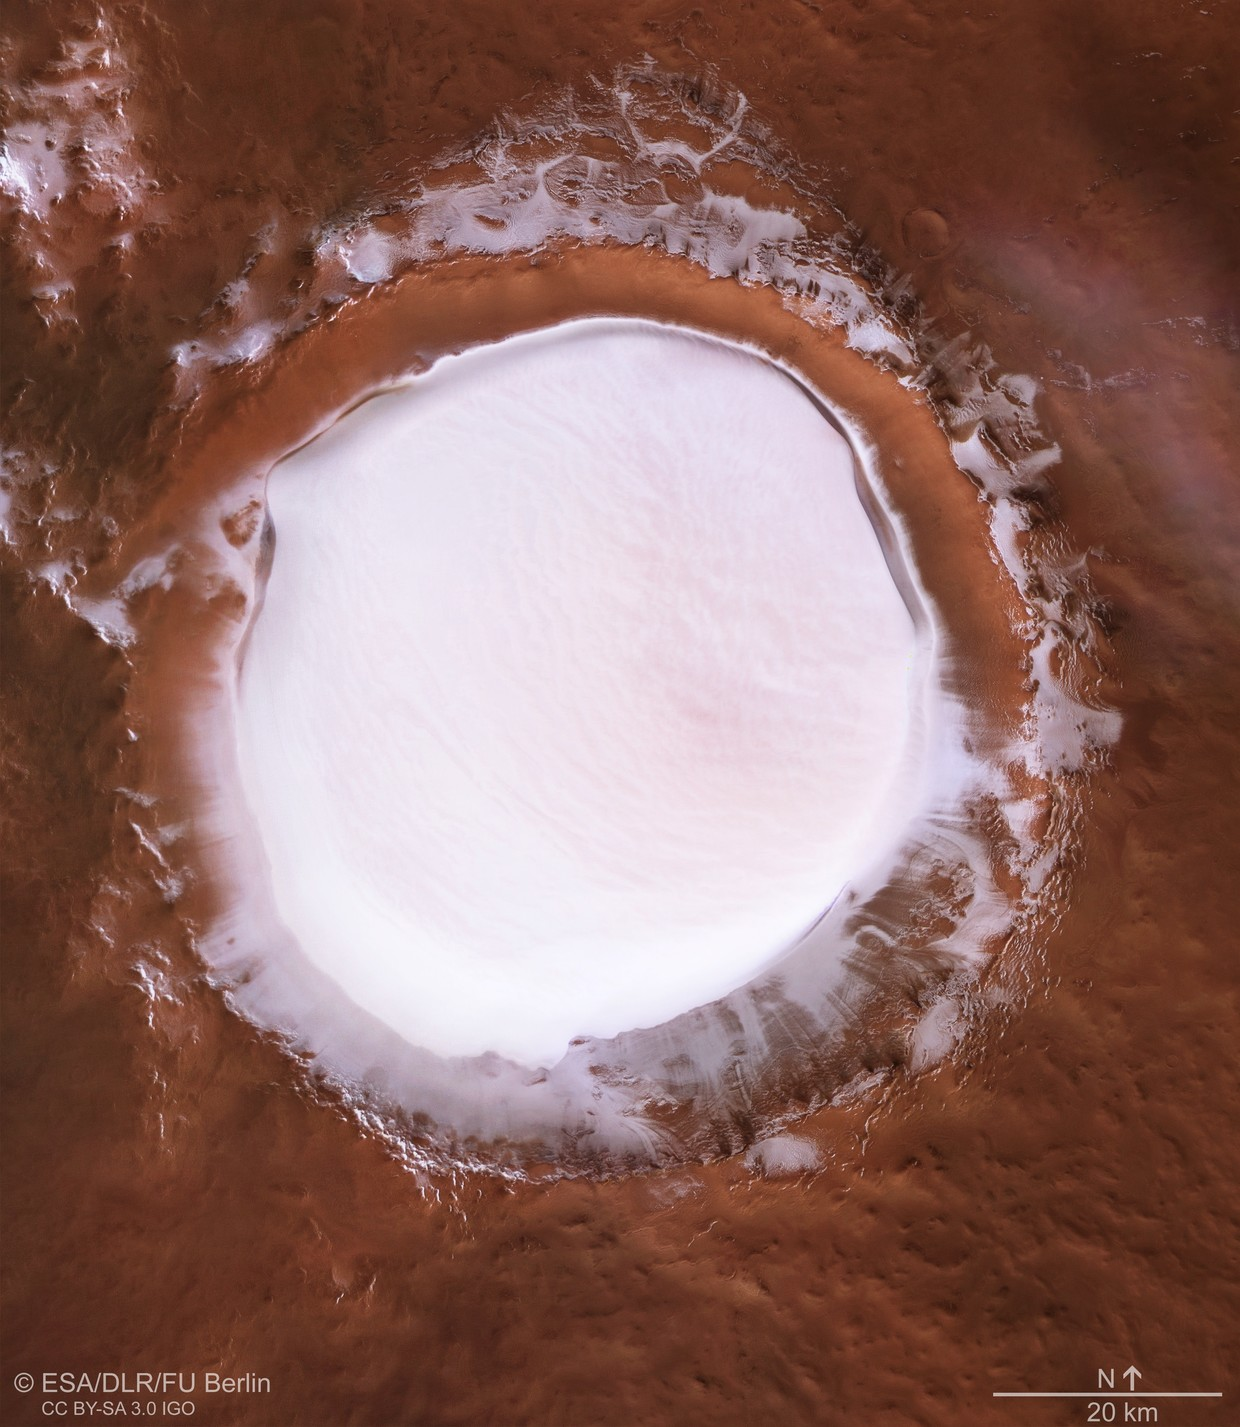 Imagini pentru WATER ON MARS PICTURED: ESA SHARES INCREDIBLE IMAGES OF MARTIAN ICE CRATER